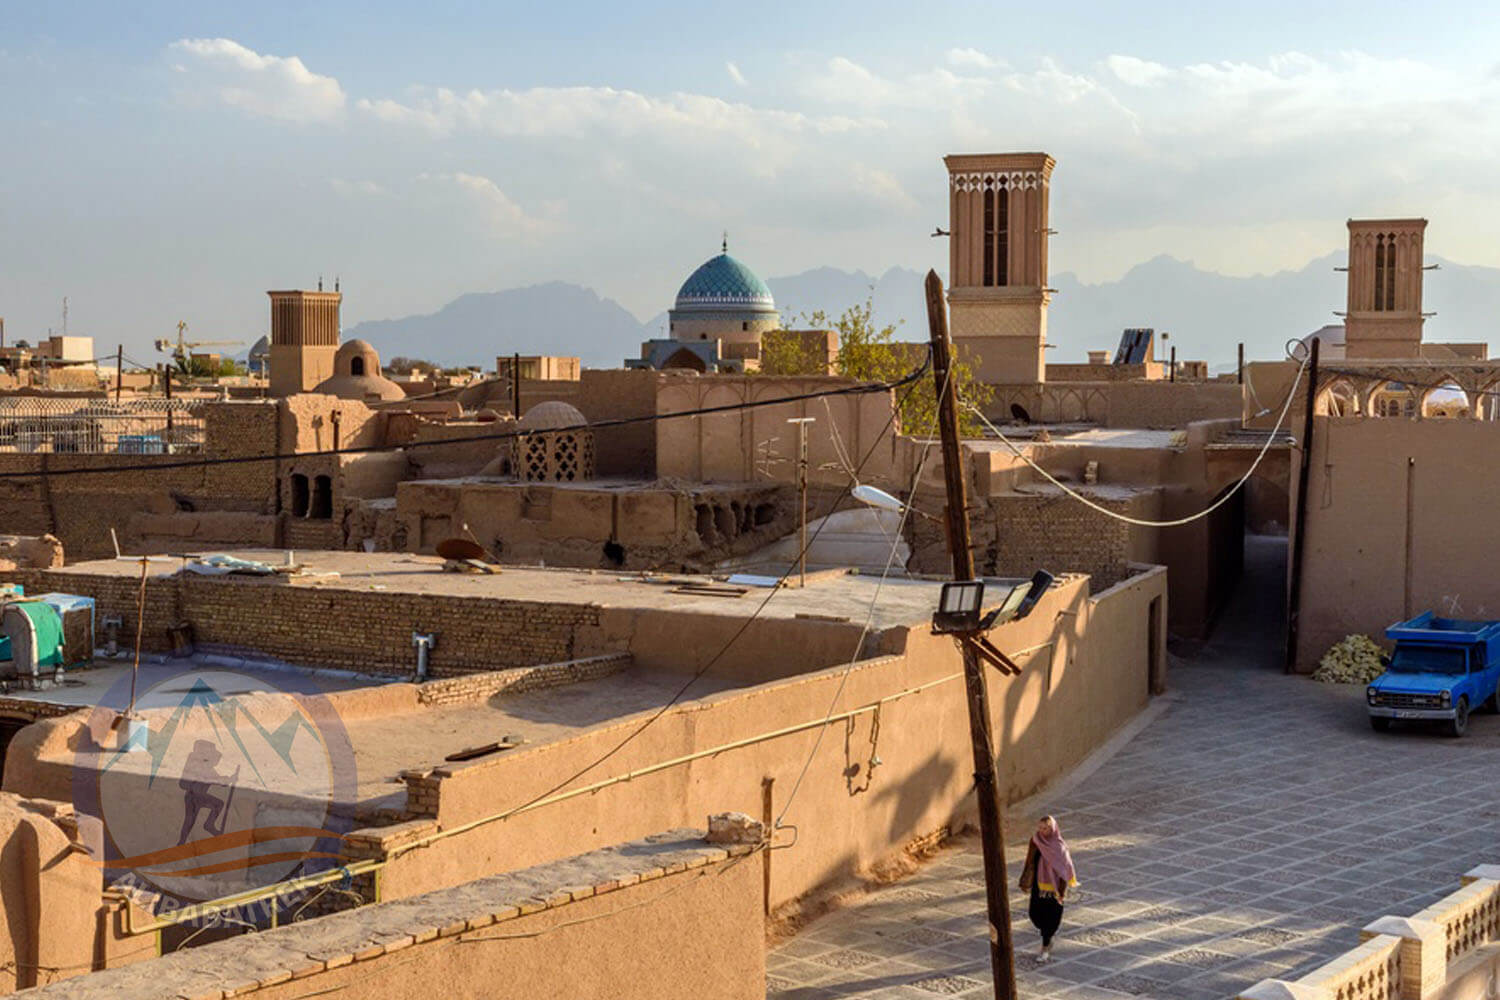 Alibabatrek iran tour packages Tour in iran Persia tour Iran cultural tour yazd4